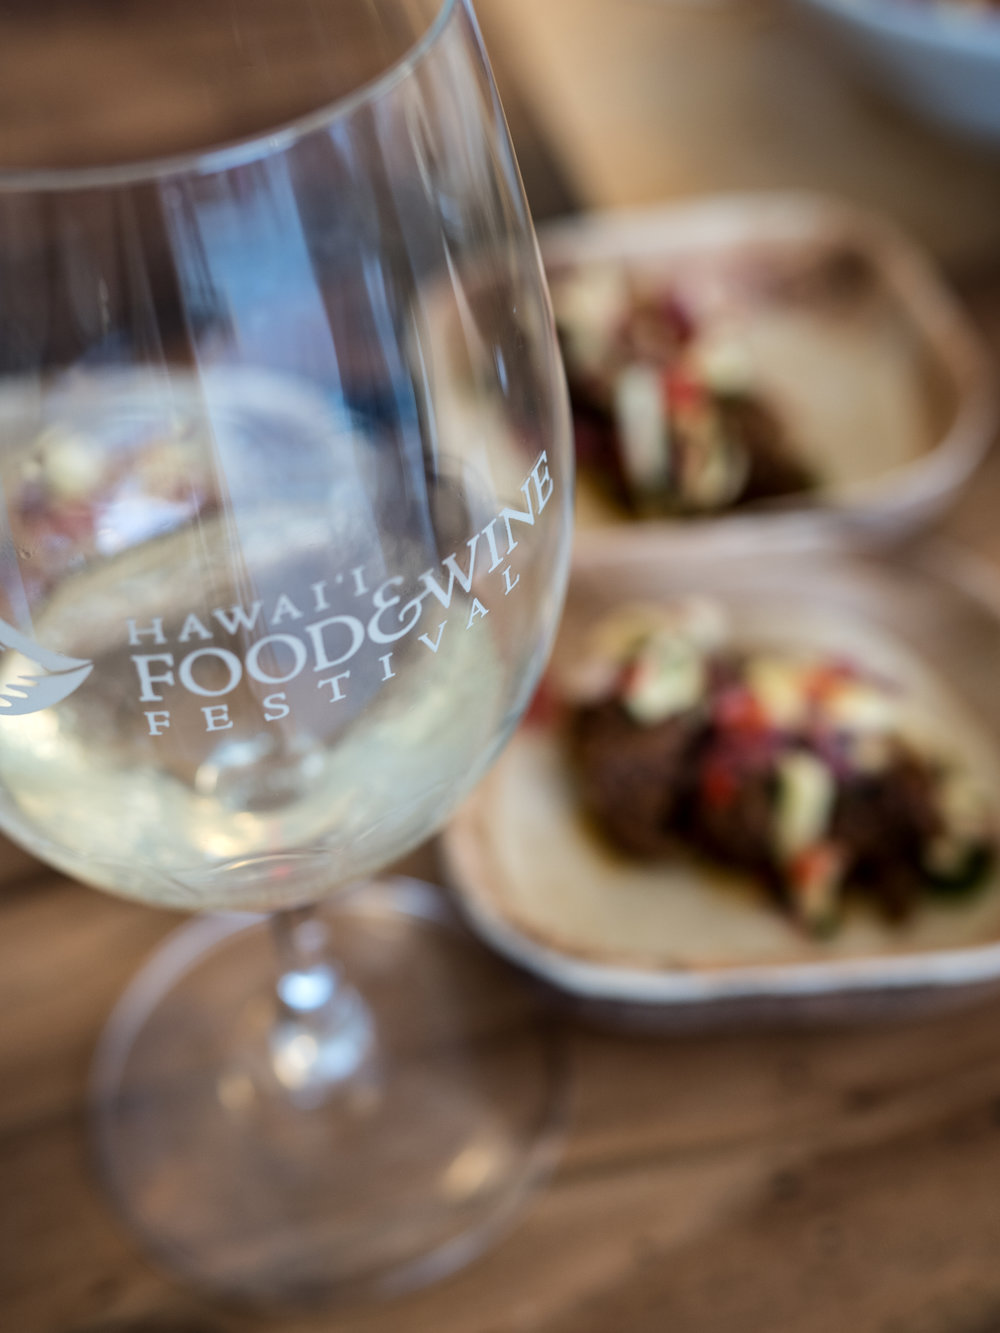 Musings by the Glass - Hawaii Food and Wine Festival -  Wine Glasse with Food